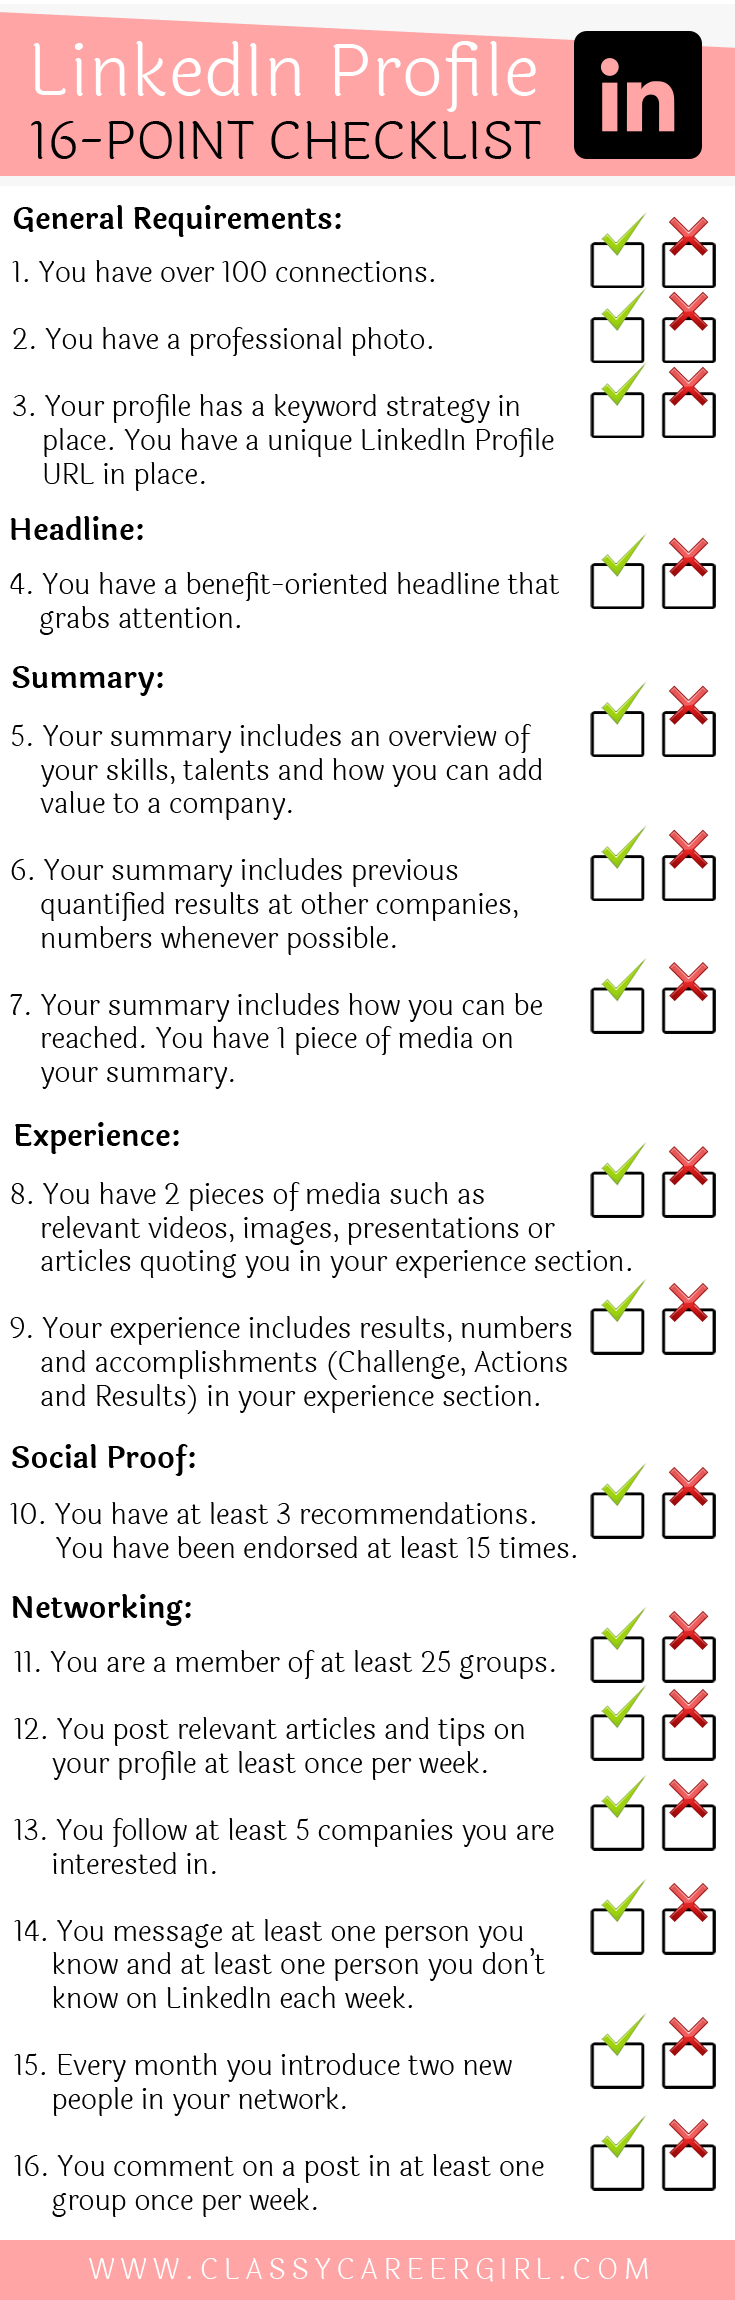 best images about student affairs interviews job 17 best images about student affairs interviews job search tips interview and most asked interview questions